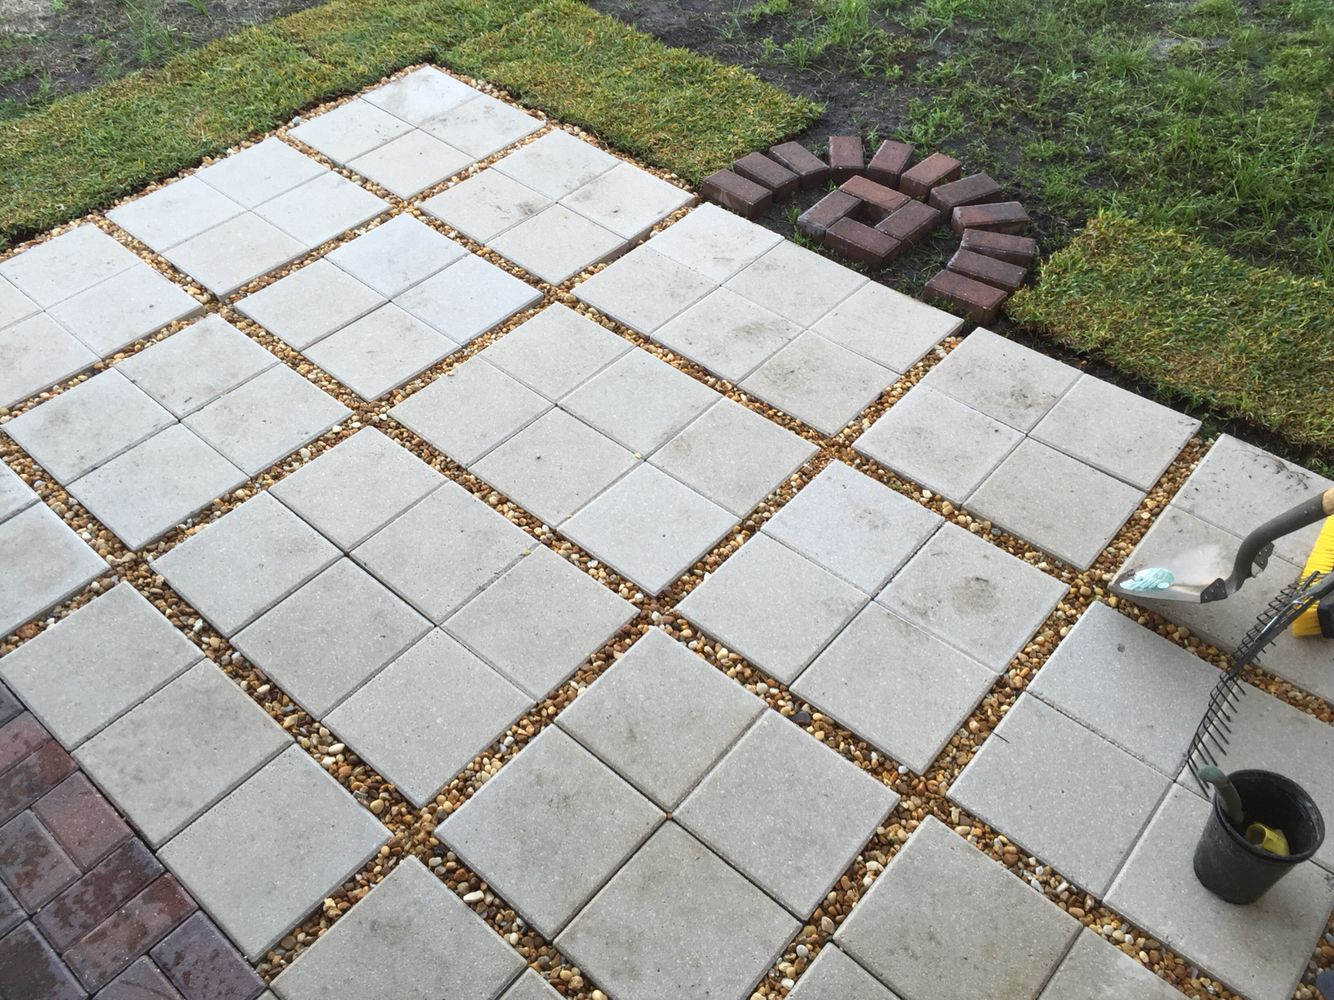 Paver Patio DIY! 12x12 Pavers With Gravel Between Them. I Put Some Gravel  Under The Pavers To Help With Drainage. The FL Ground Is Sandy Already So I  Didnu0027t ...